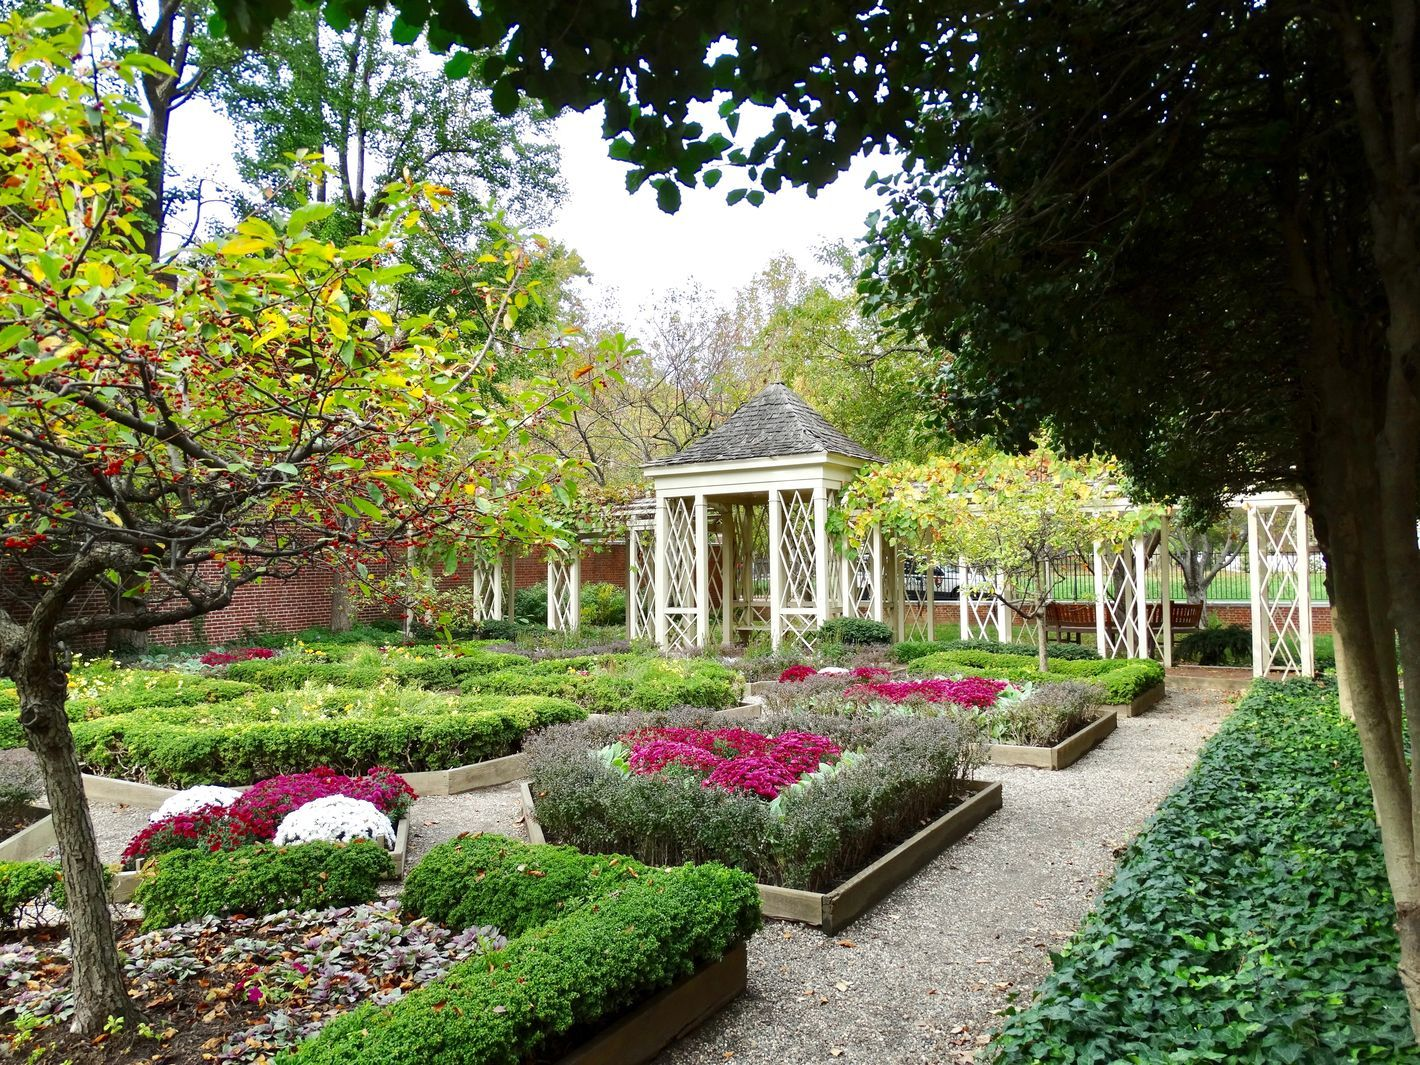 25 secret gardens, parks, and green spaces in Philly